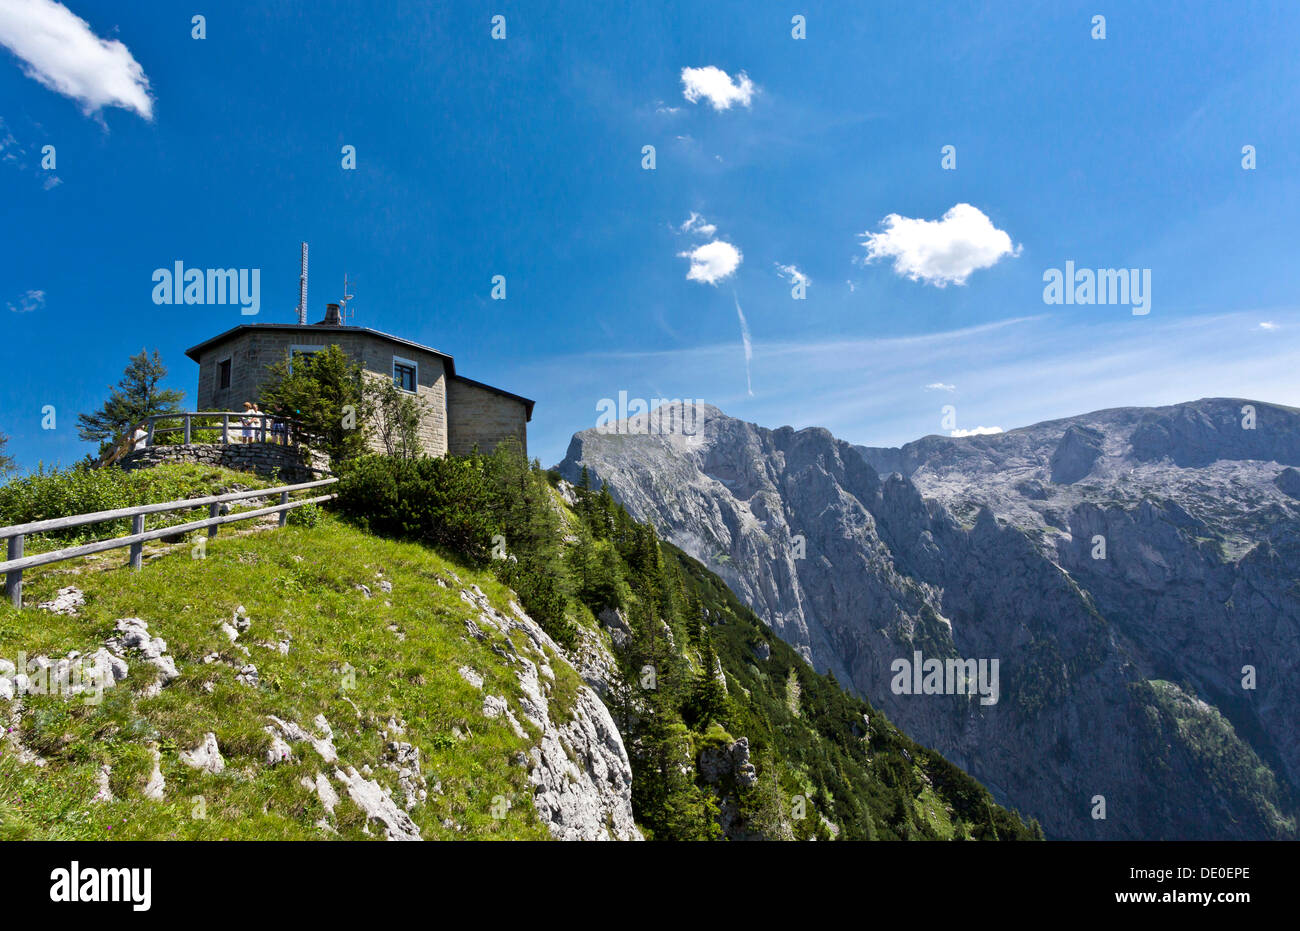 Kehlsteinhaus, known as Eagle's Nest, in front of Hoher Goell Mountain, 2522 m, Berchtesgadener Land, Bavaria Stock Photo